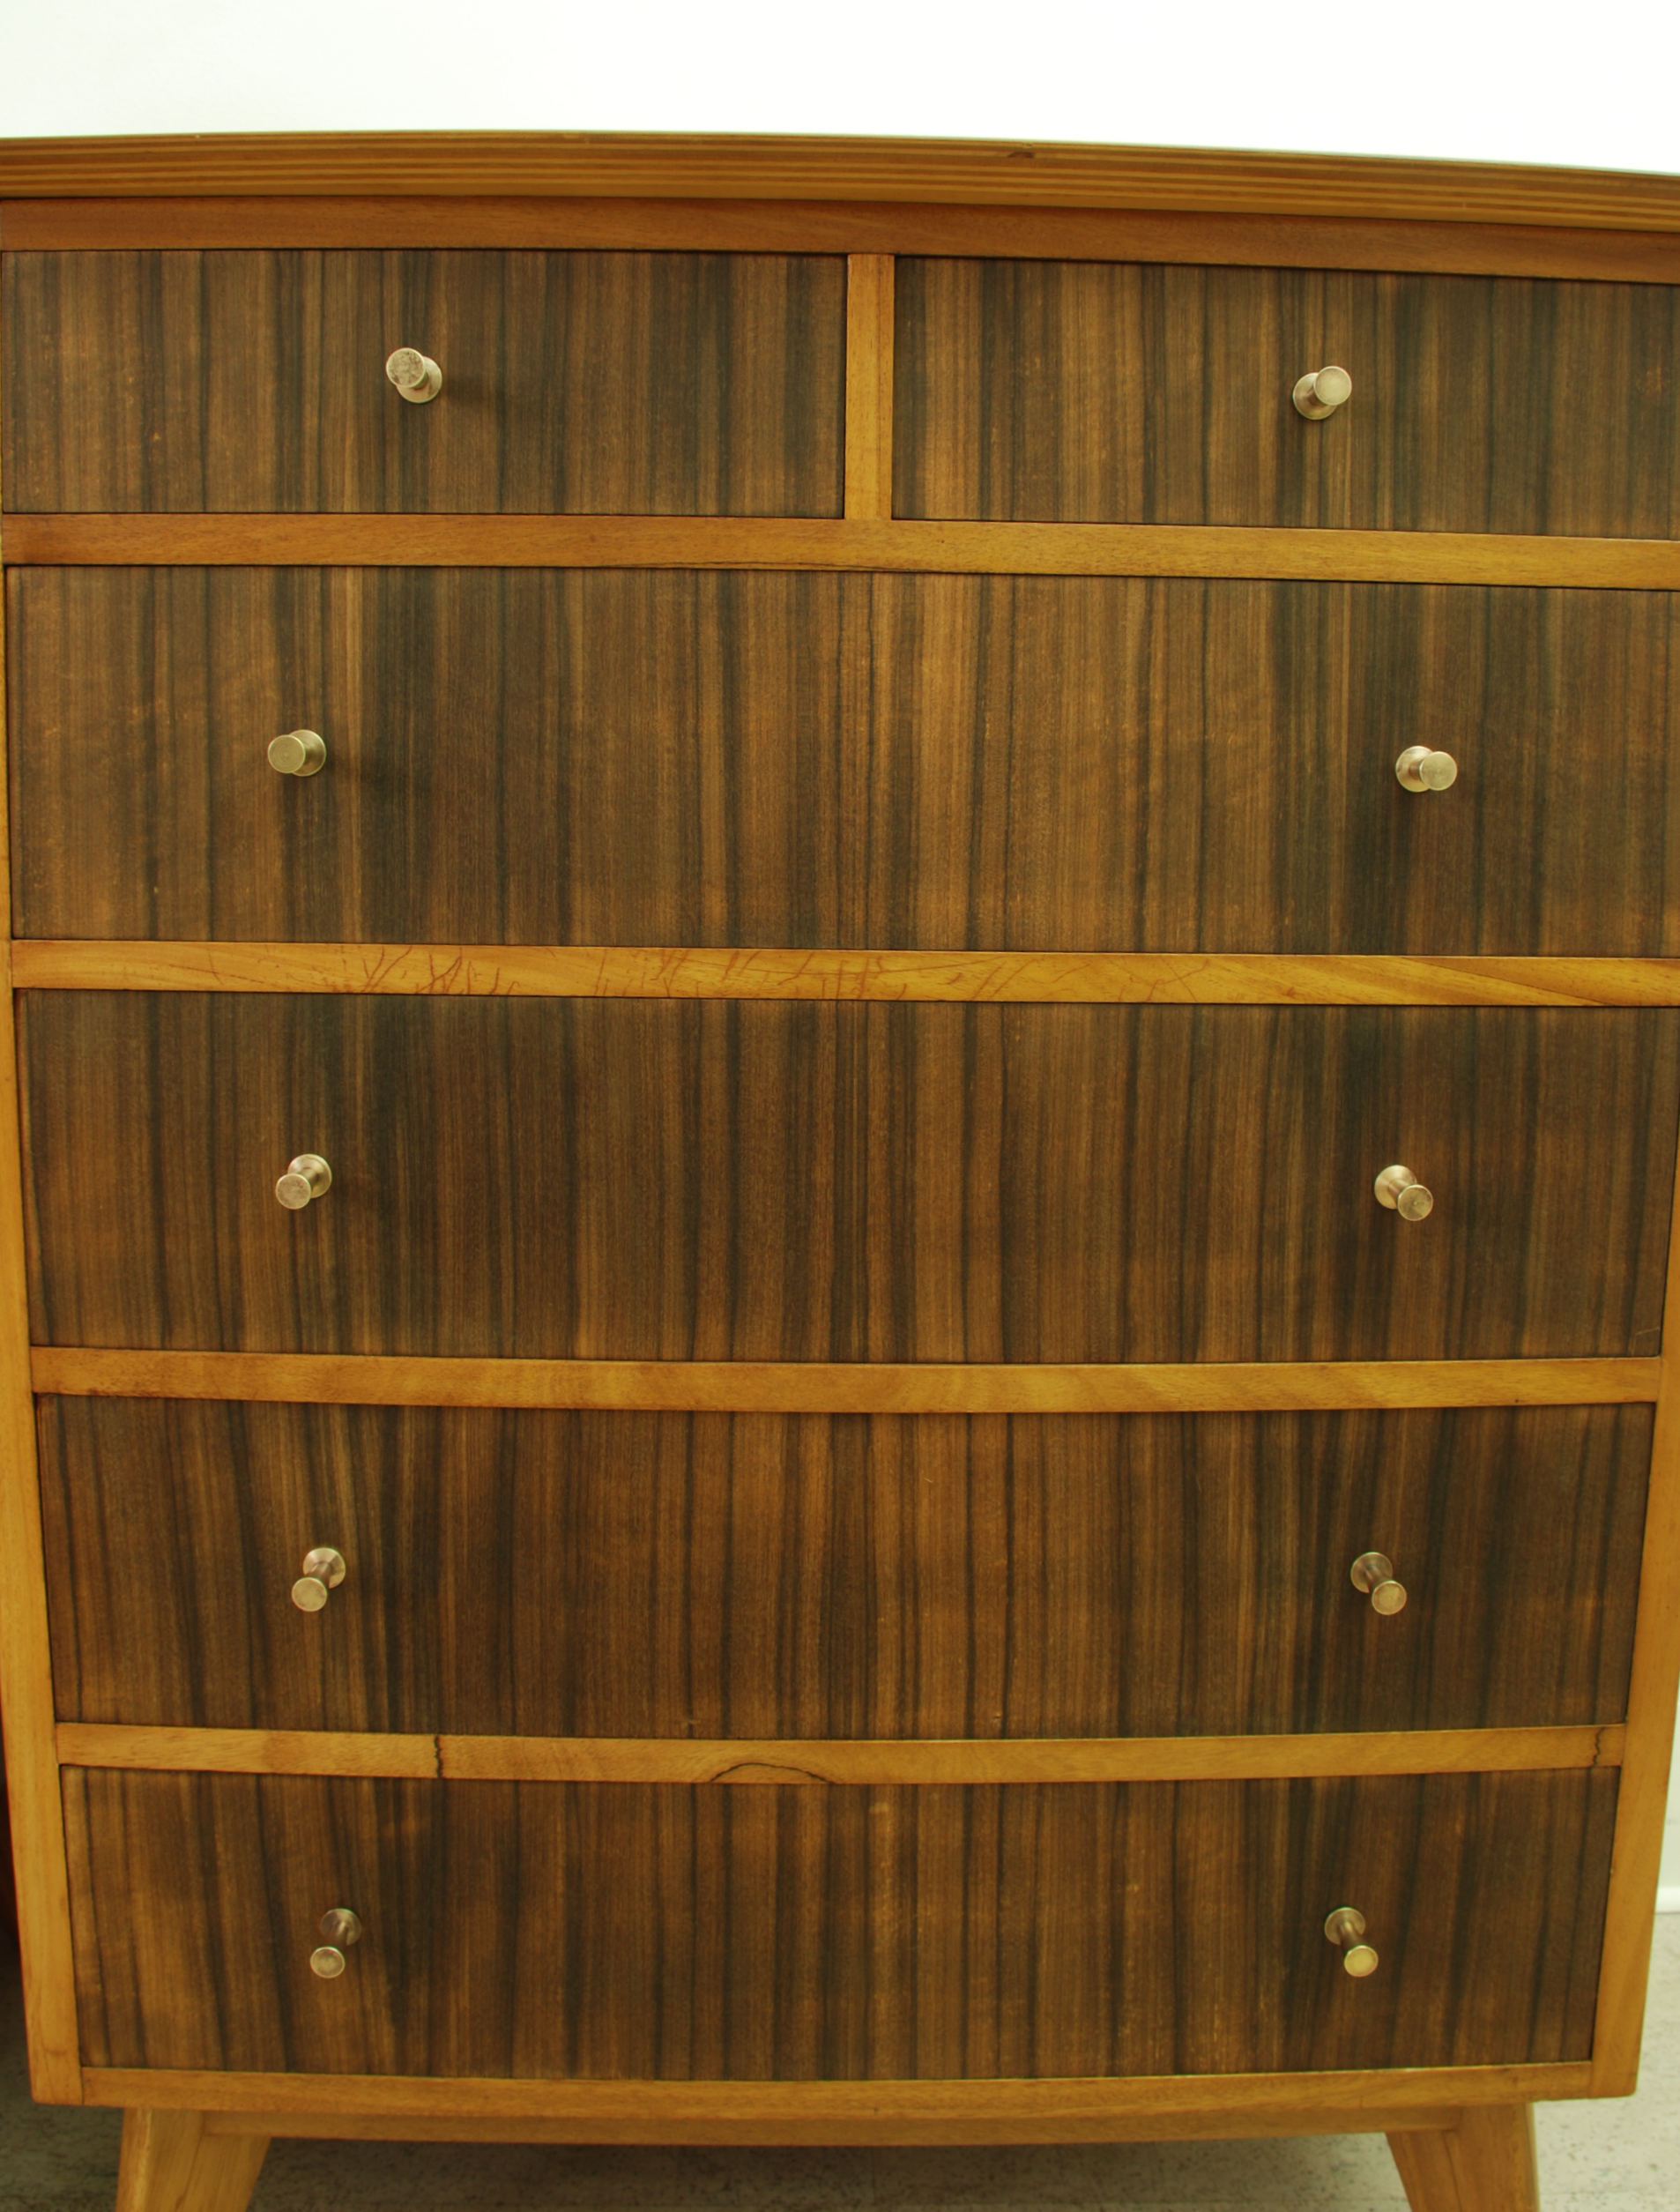 MORRIS OF GLASGOW CUMBRAE CHEST OF DRAWERS